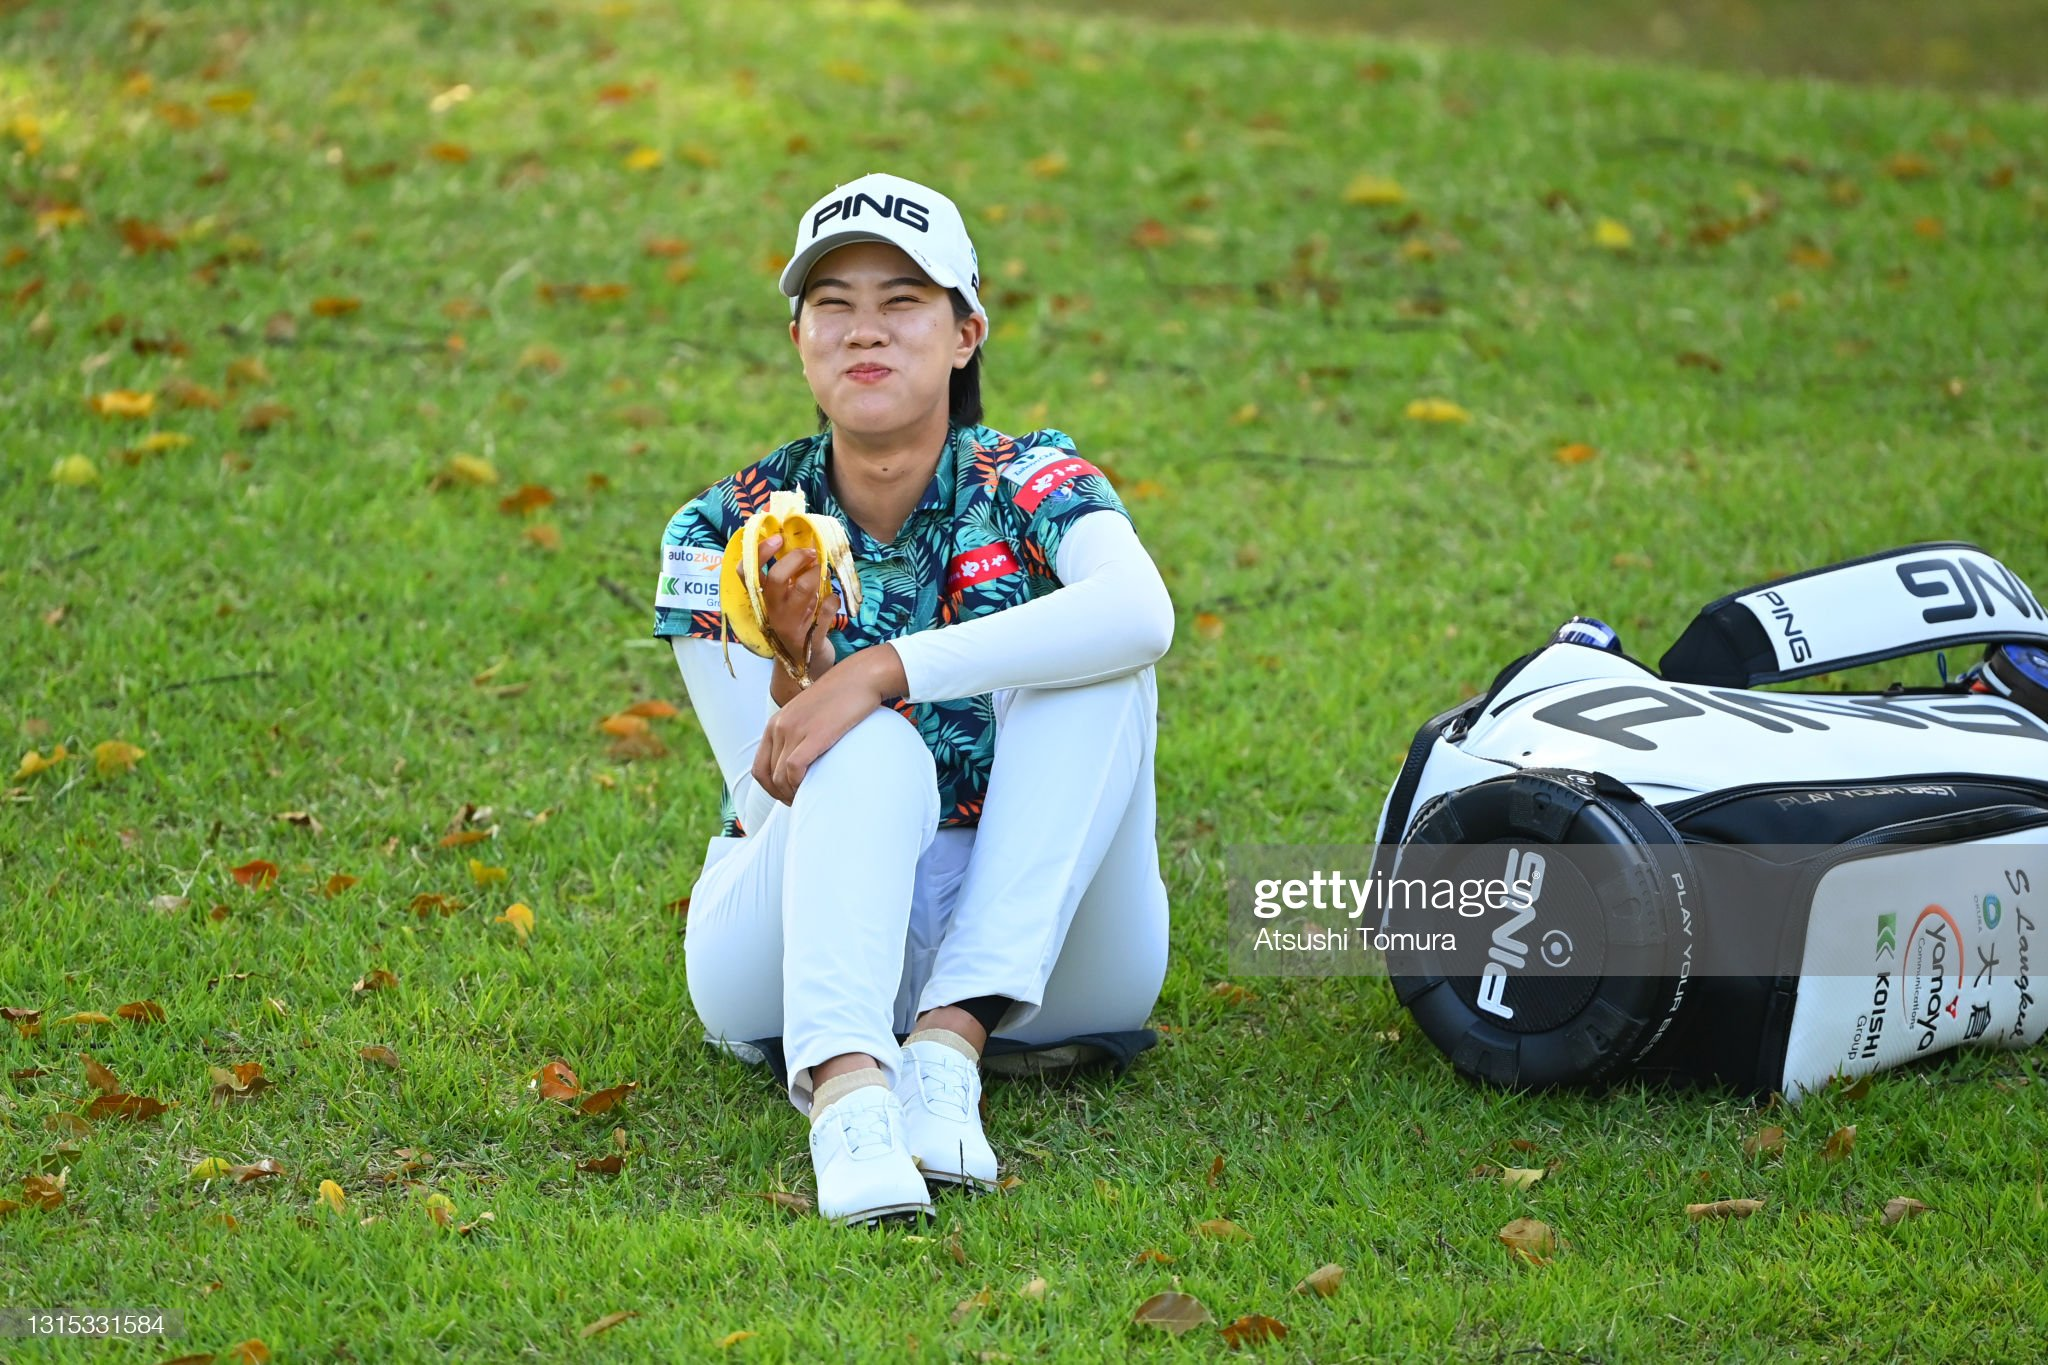 https://media.gettyimages.com/photos/langkul-of-thailand-has-a-bite-on-the-9th-tee-during-the-first-round-picture-id1315331584?s=2048x2048